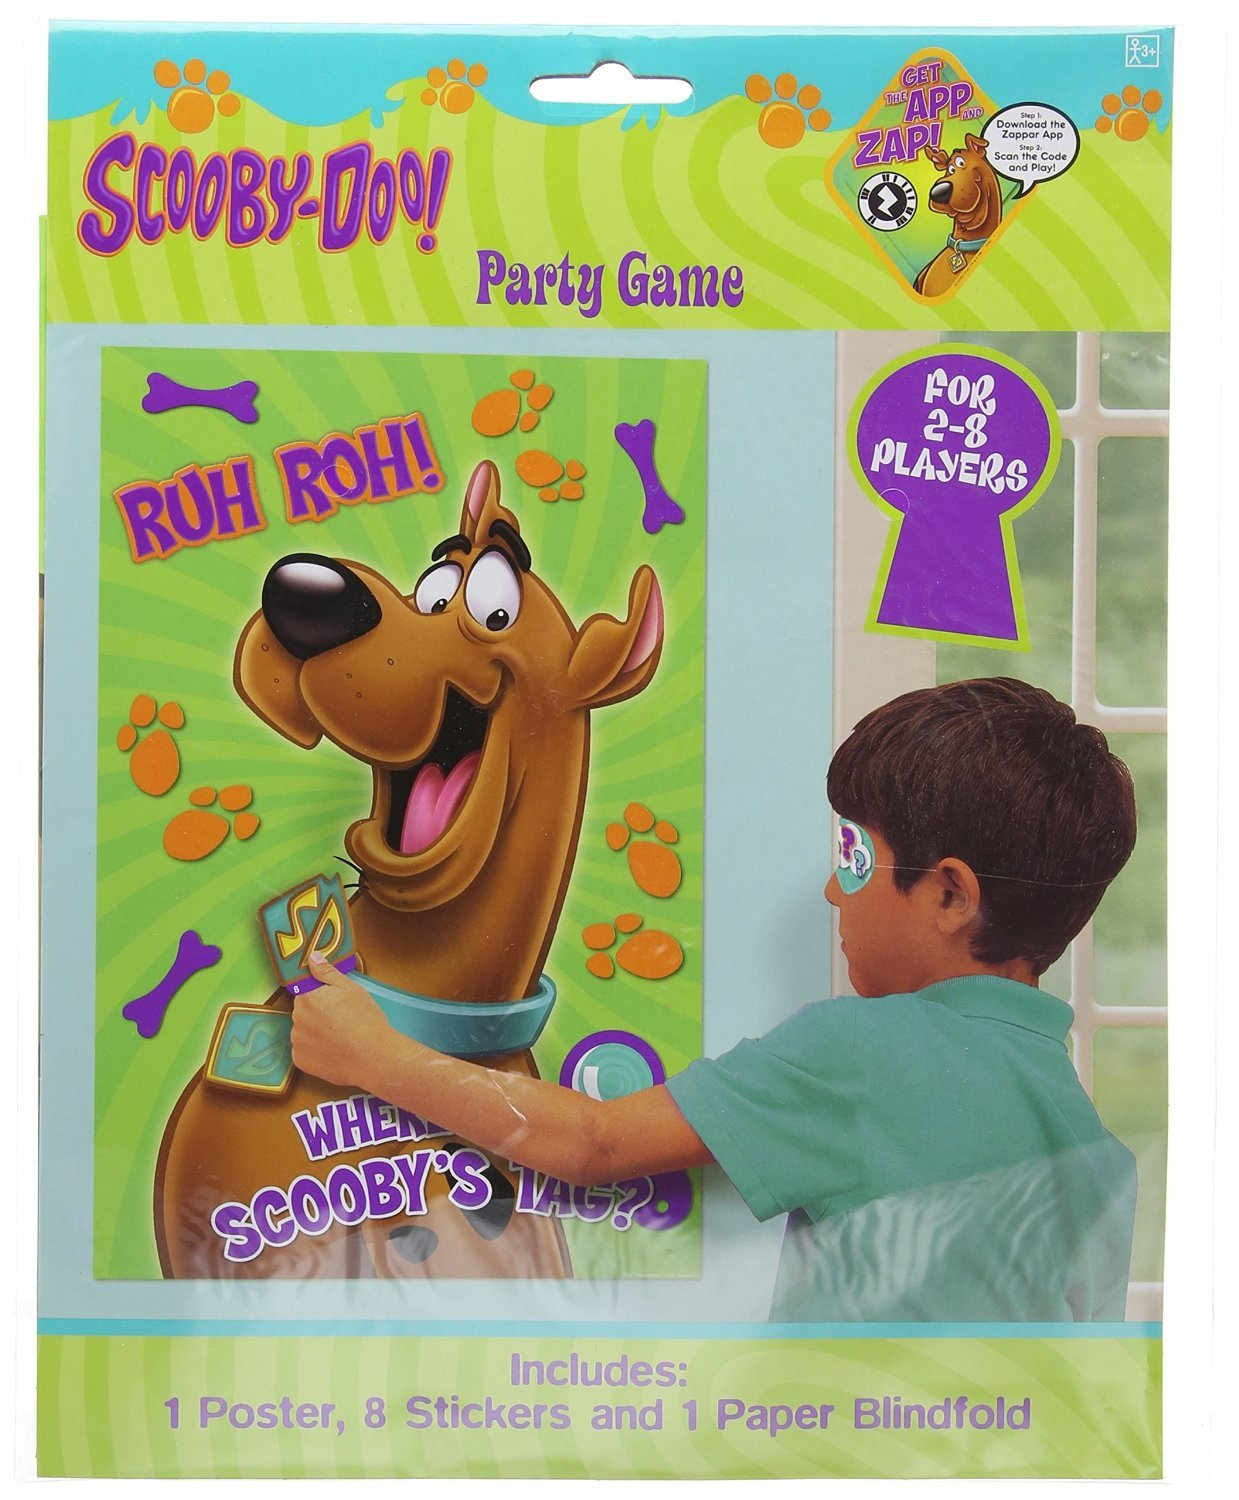 Amscan Awesome Scooby-Doo Party Game Birthday Party Supply, 37-1/2 x 24-1/2'', Teal/Purple/Green